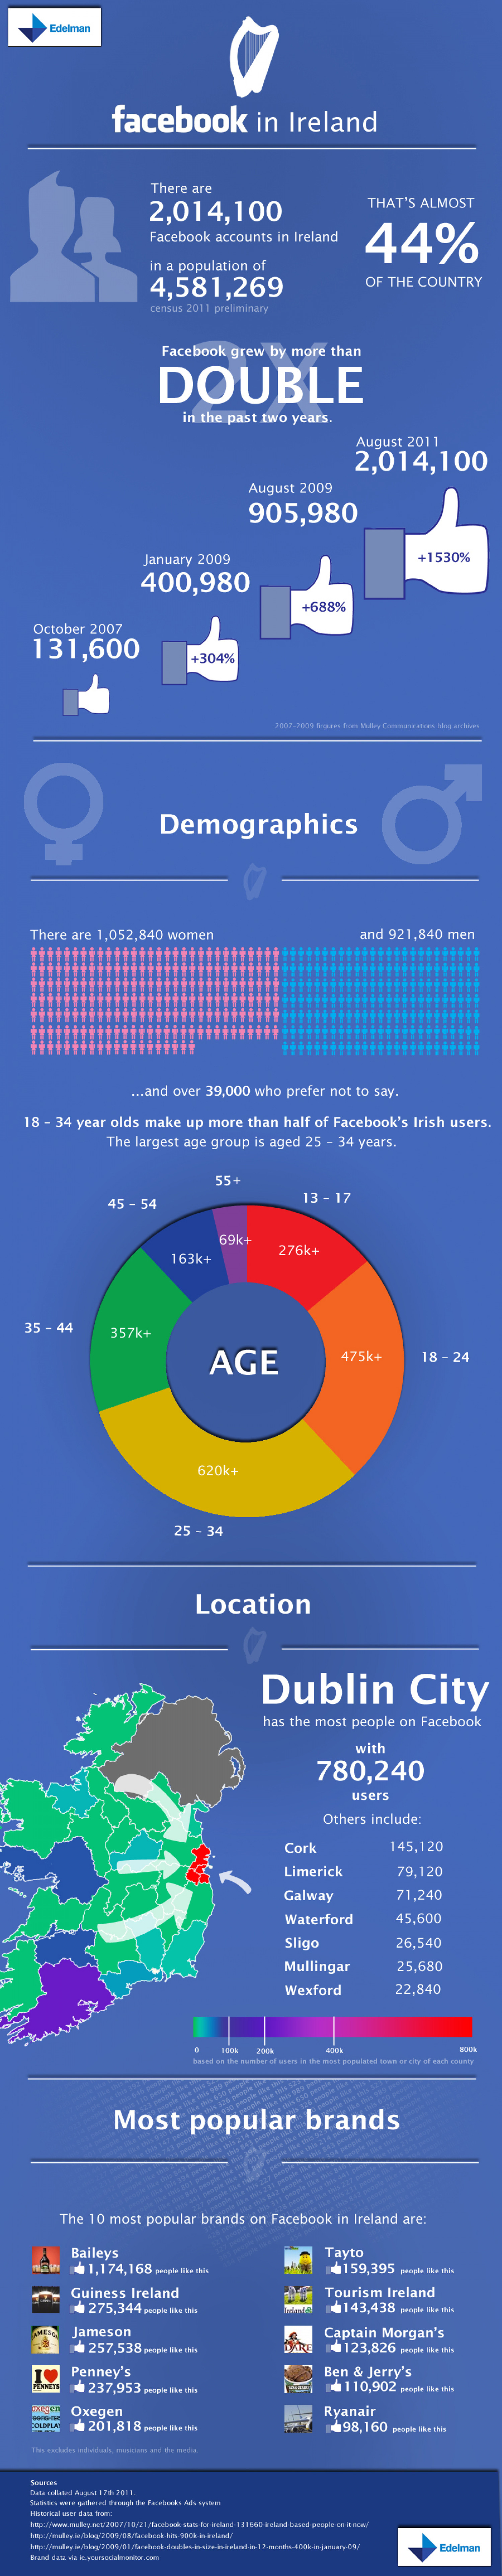 Facebook in Ireland Infographic